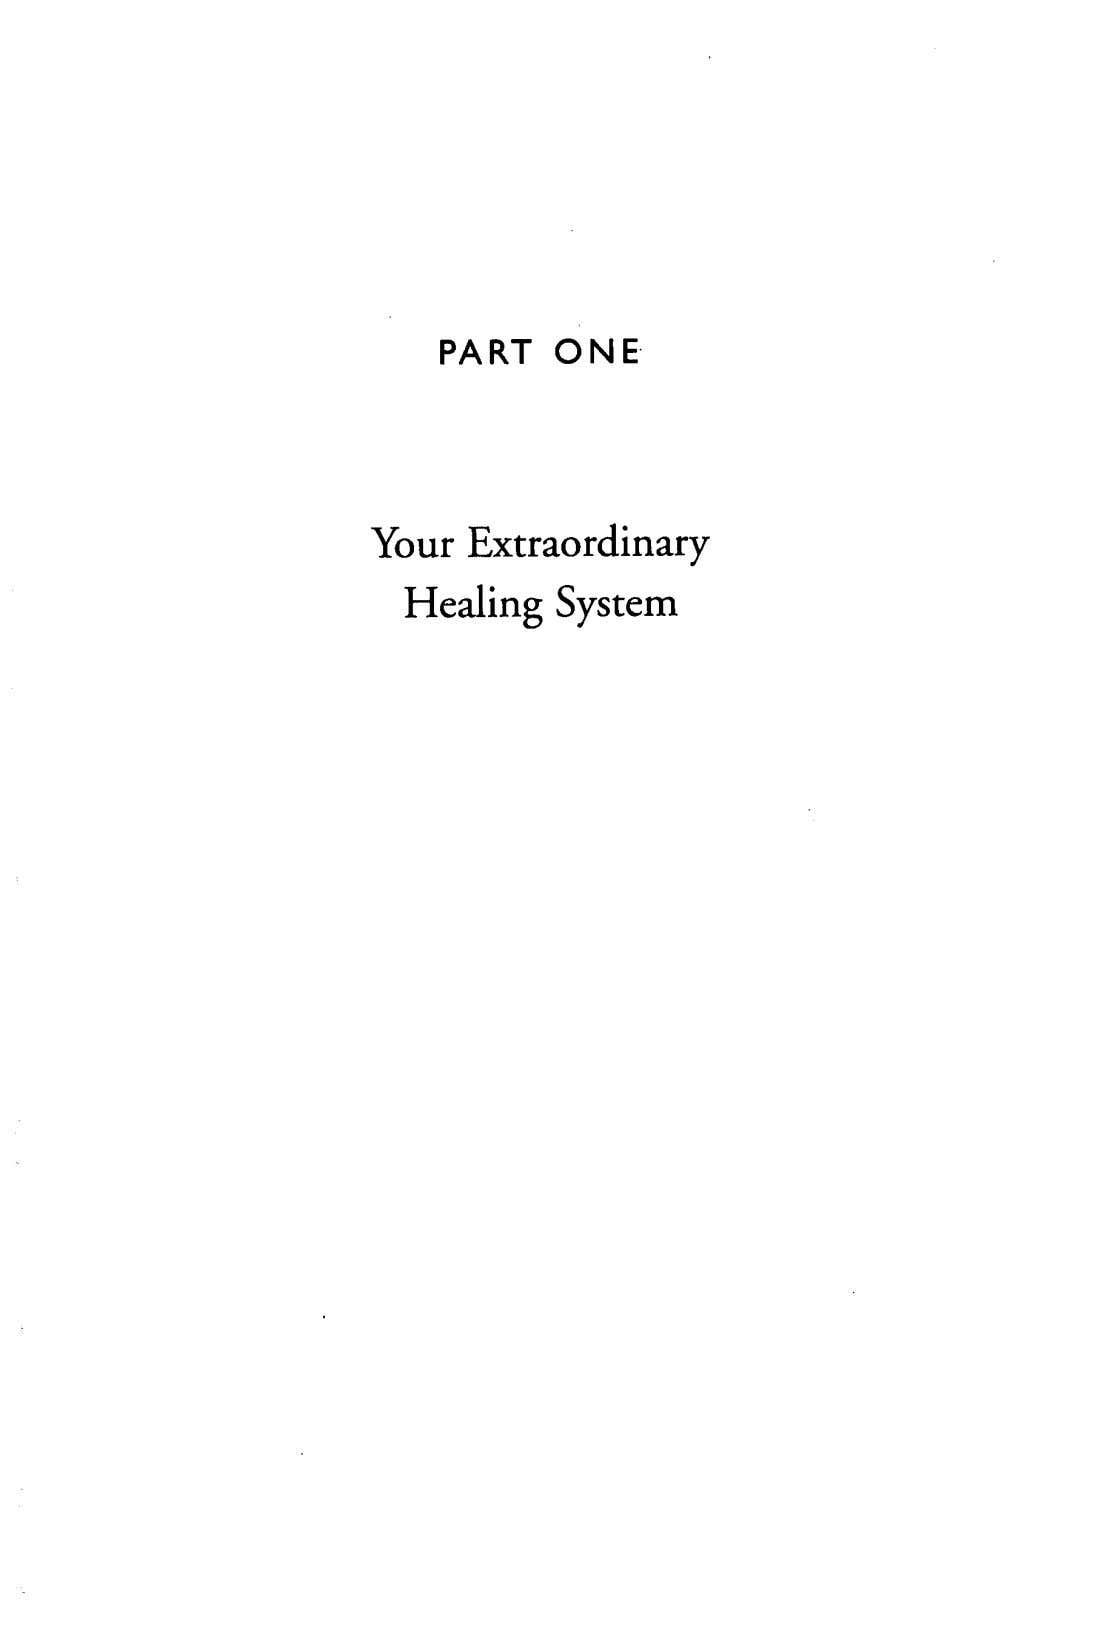 PART ONE Your Extraordinary Healing System